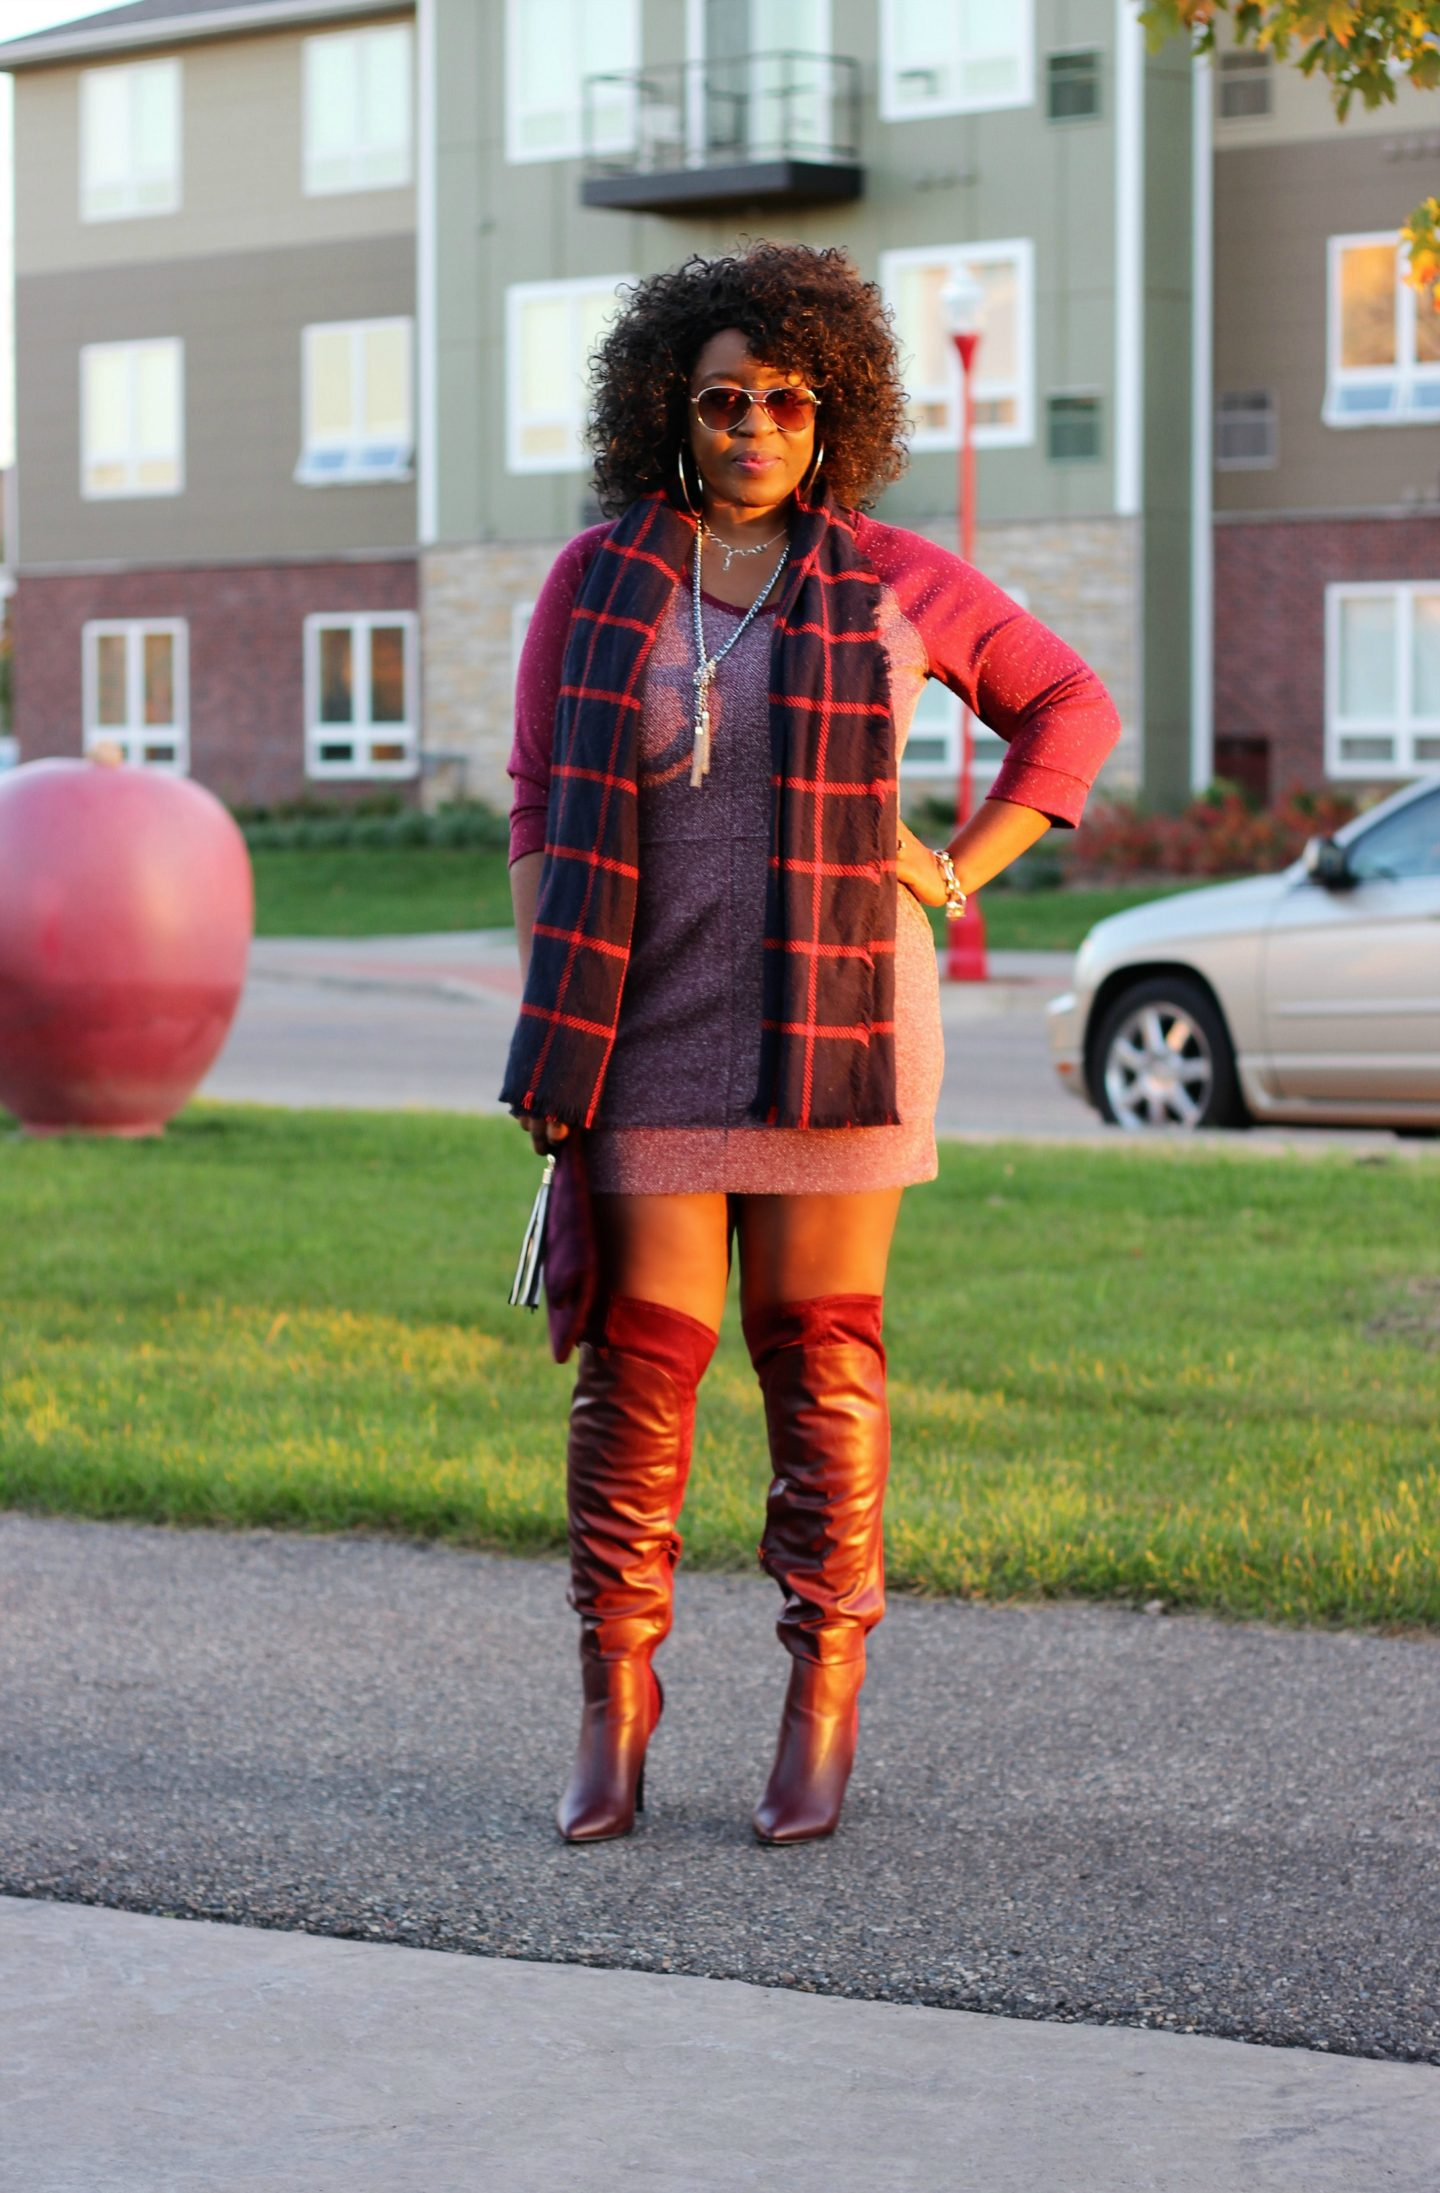 bugundy-oxblood-outfit-look-for-fall